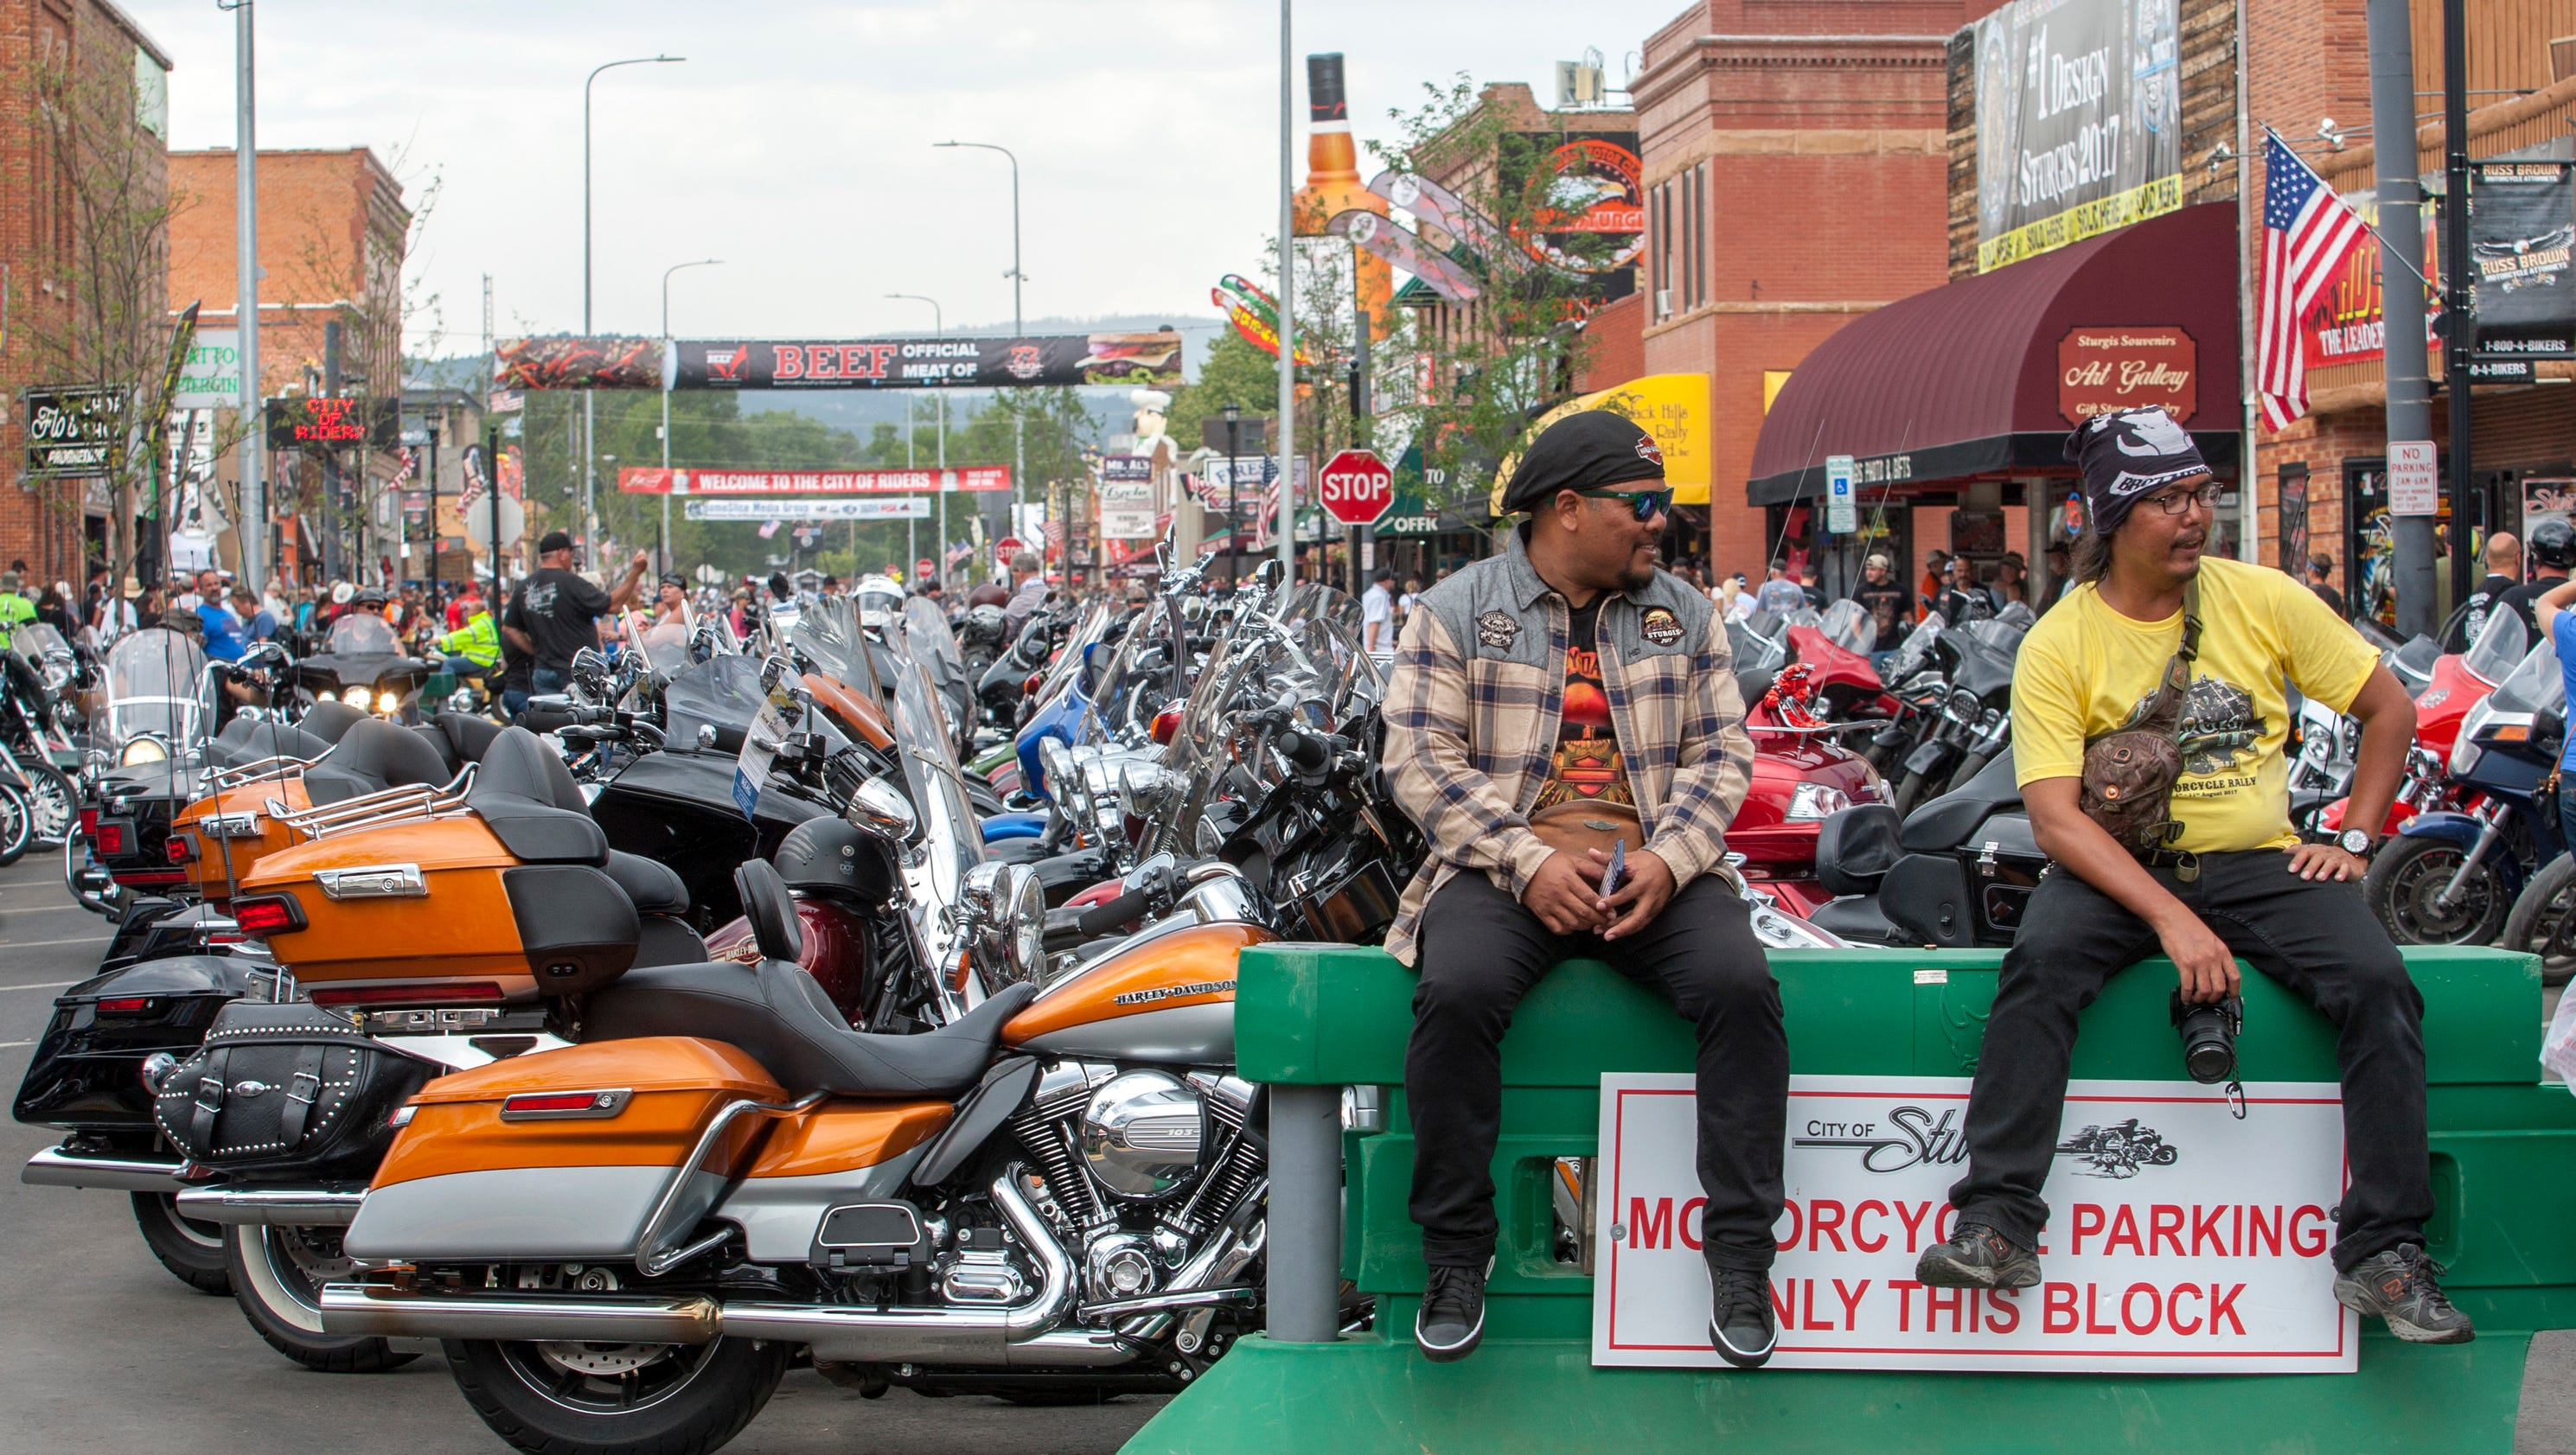 86 Three Riders Die In First Fatal Crashes Of The Sturgis